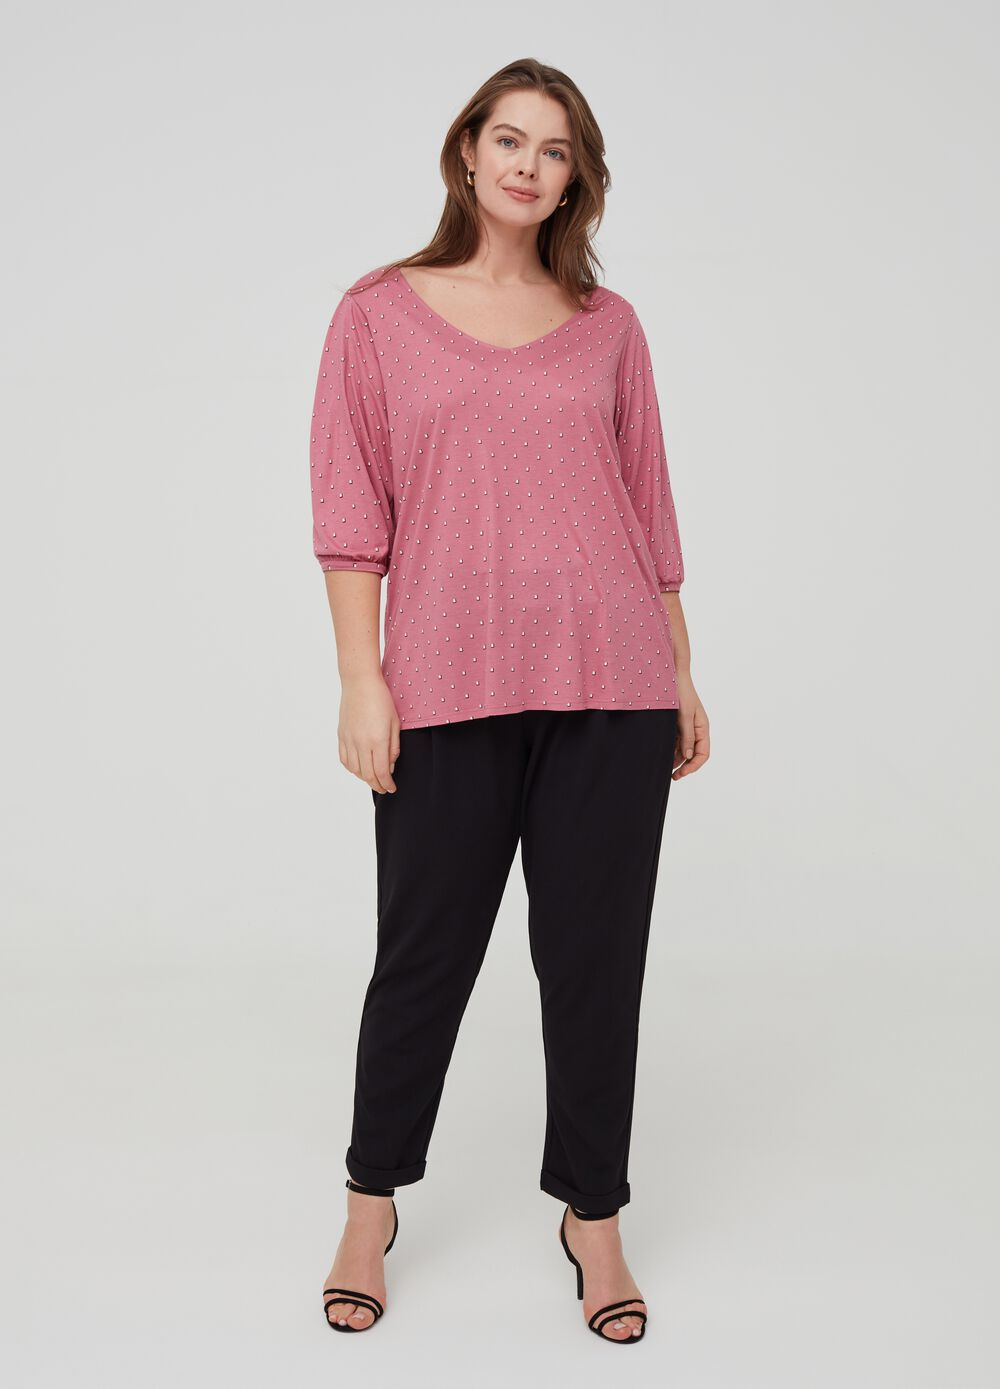 Curvy T-shirt with print in 100% viscose